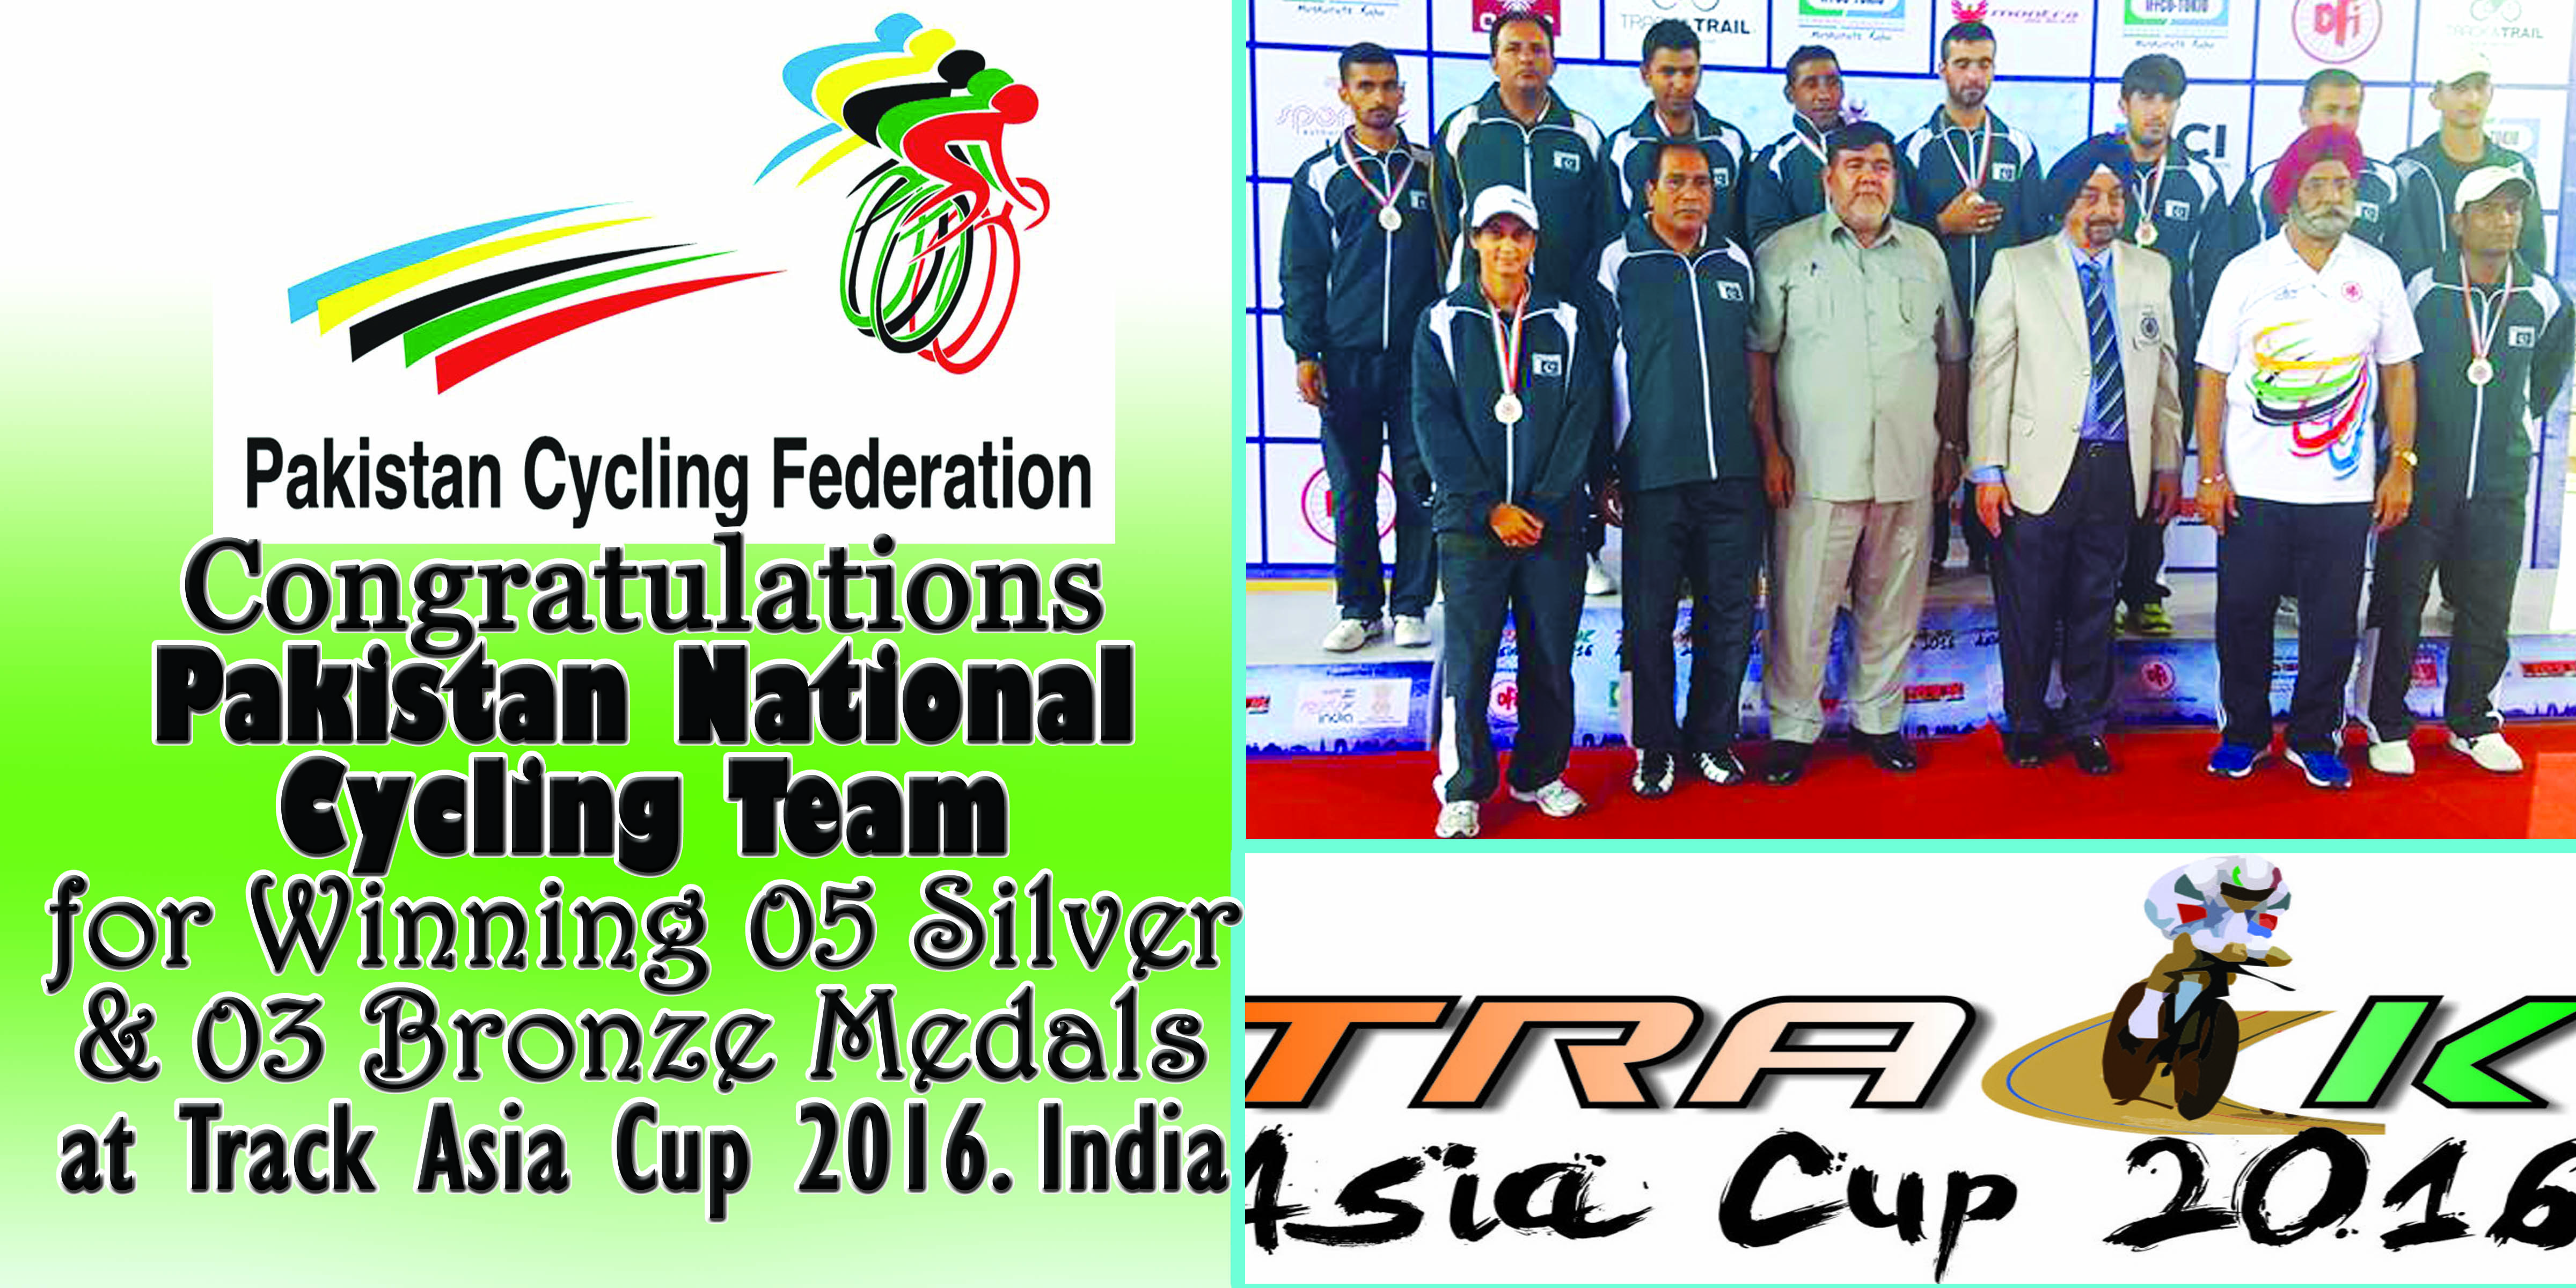 Pakistan Cycling Team Wins 2nd Position at Track Asia Cup India with 05 Silver and 02 Bronze Medals